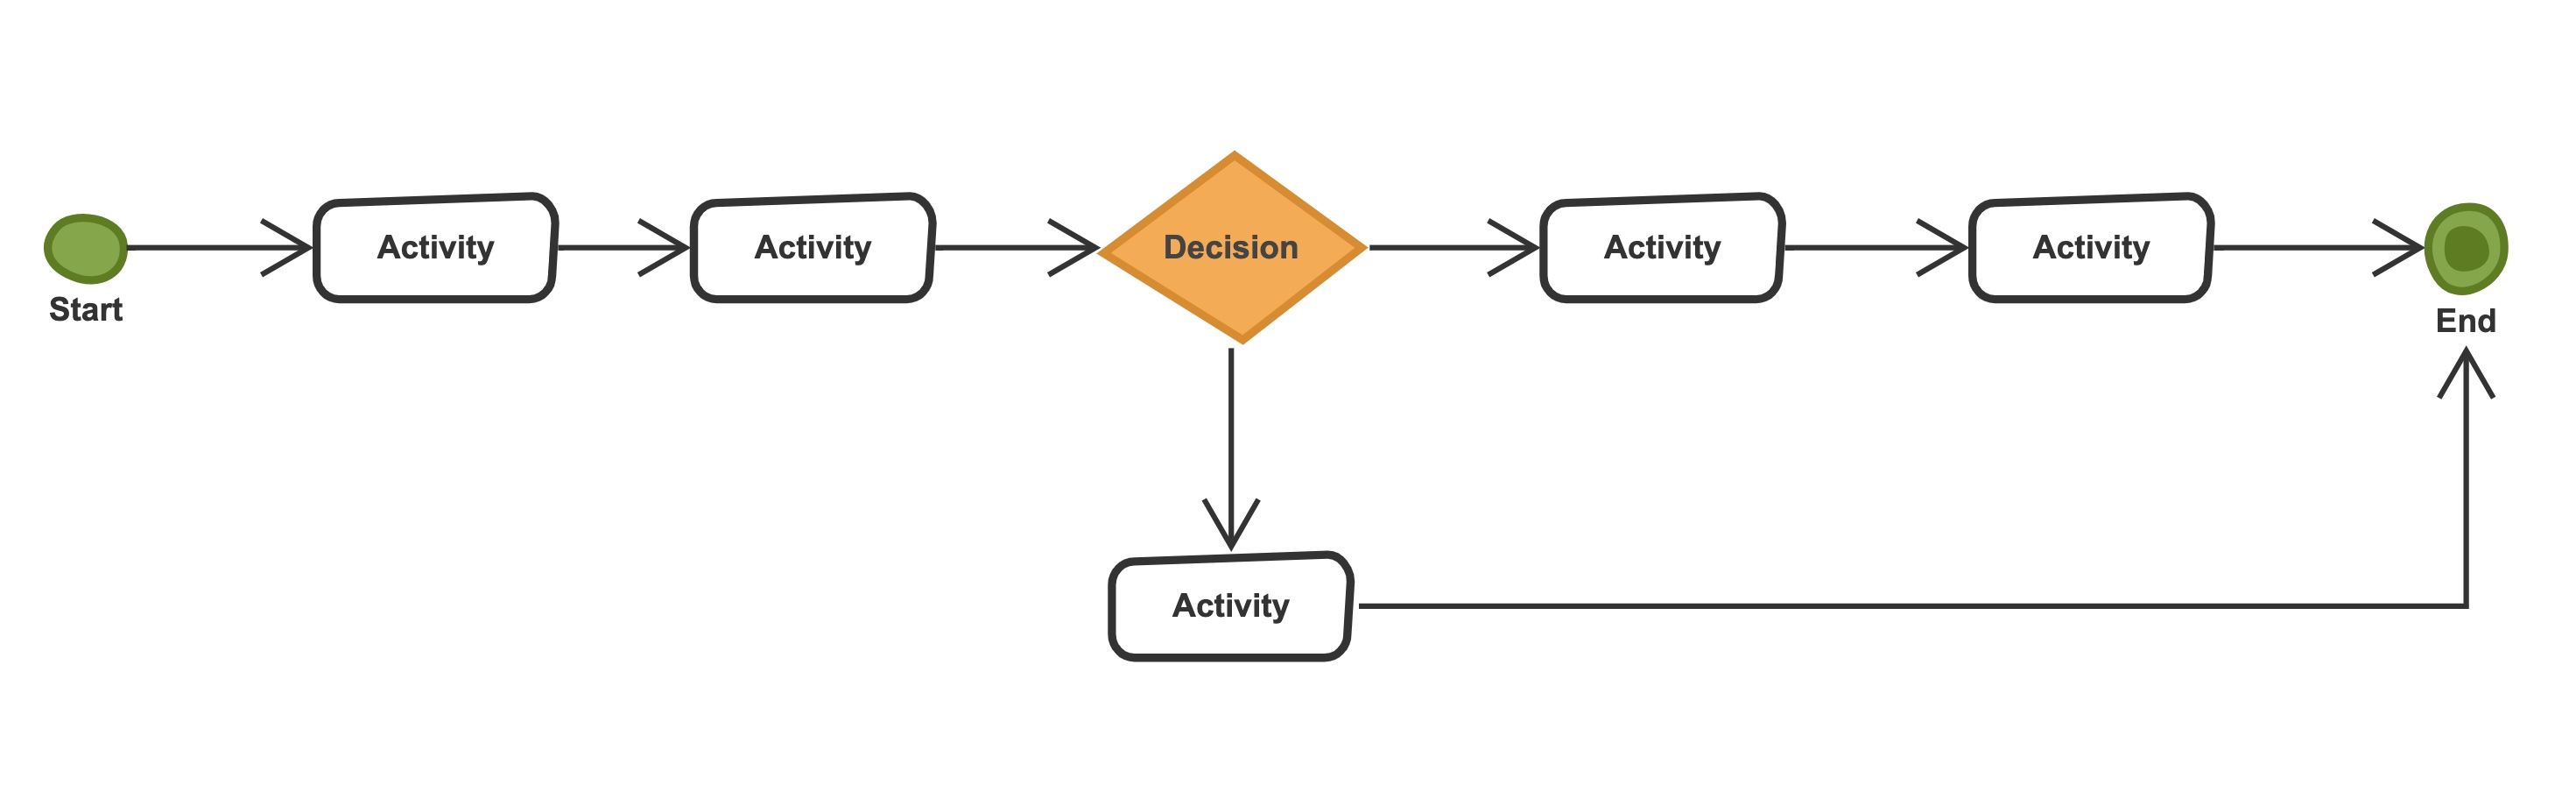 An example of decision flowchart with one decision